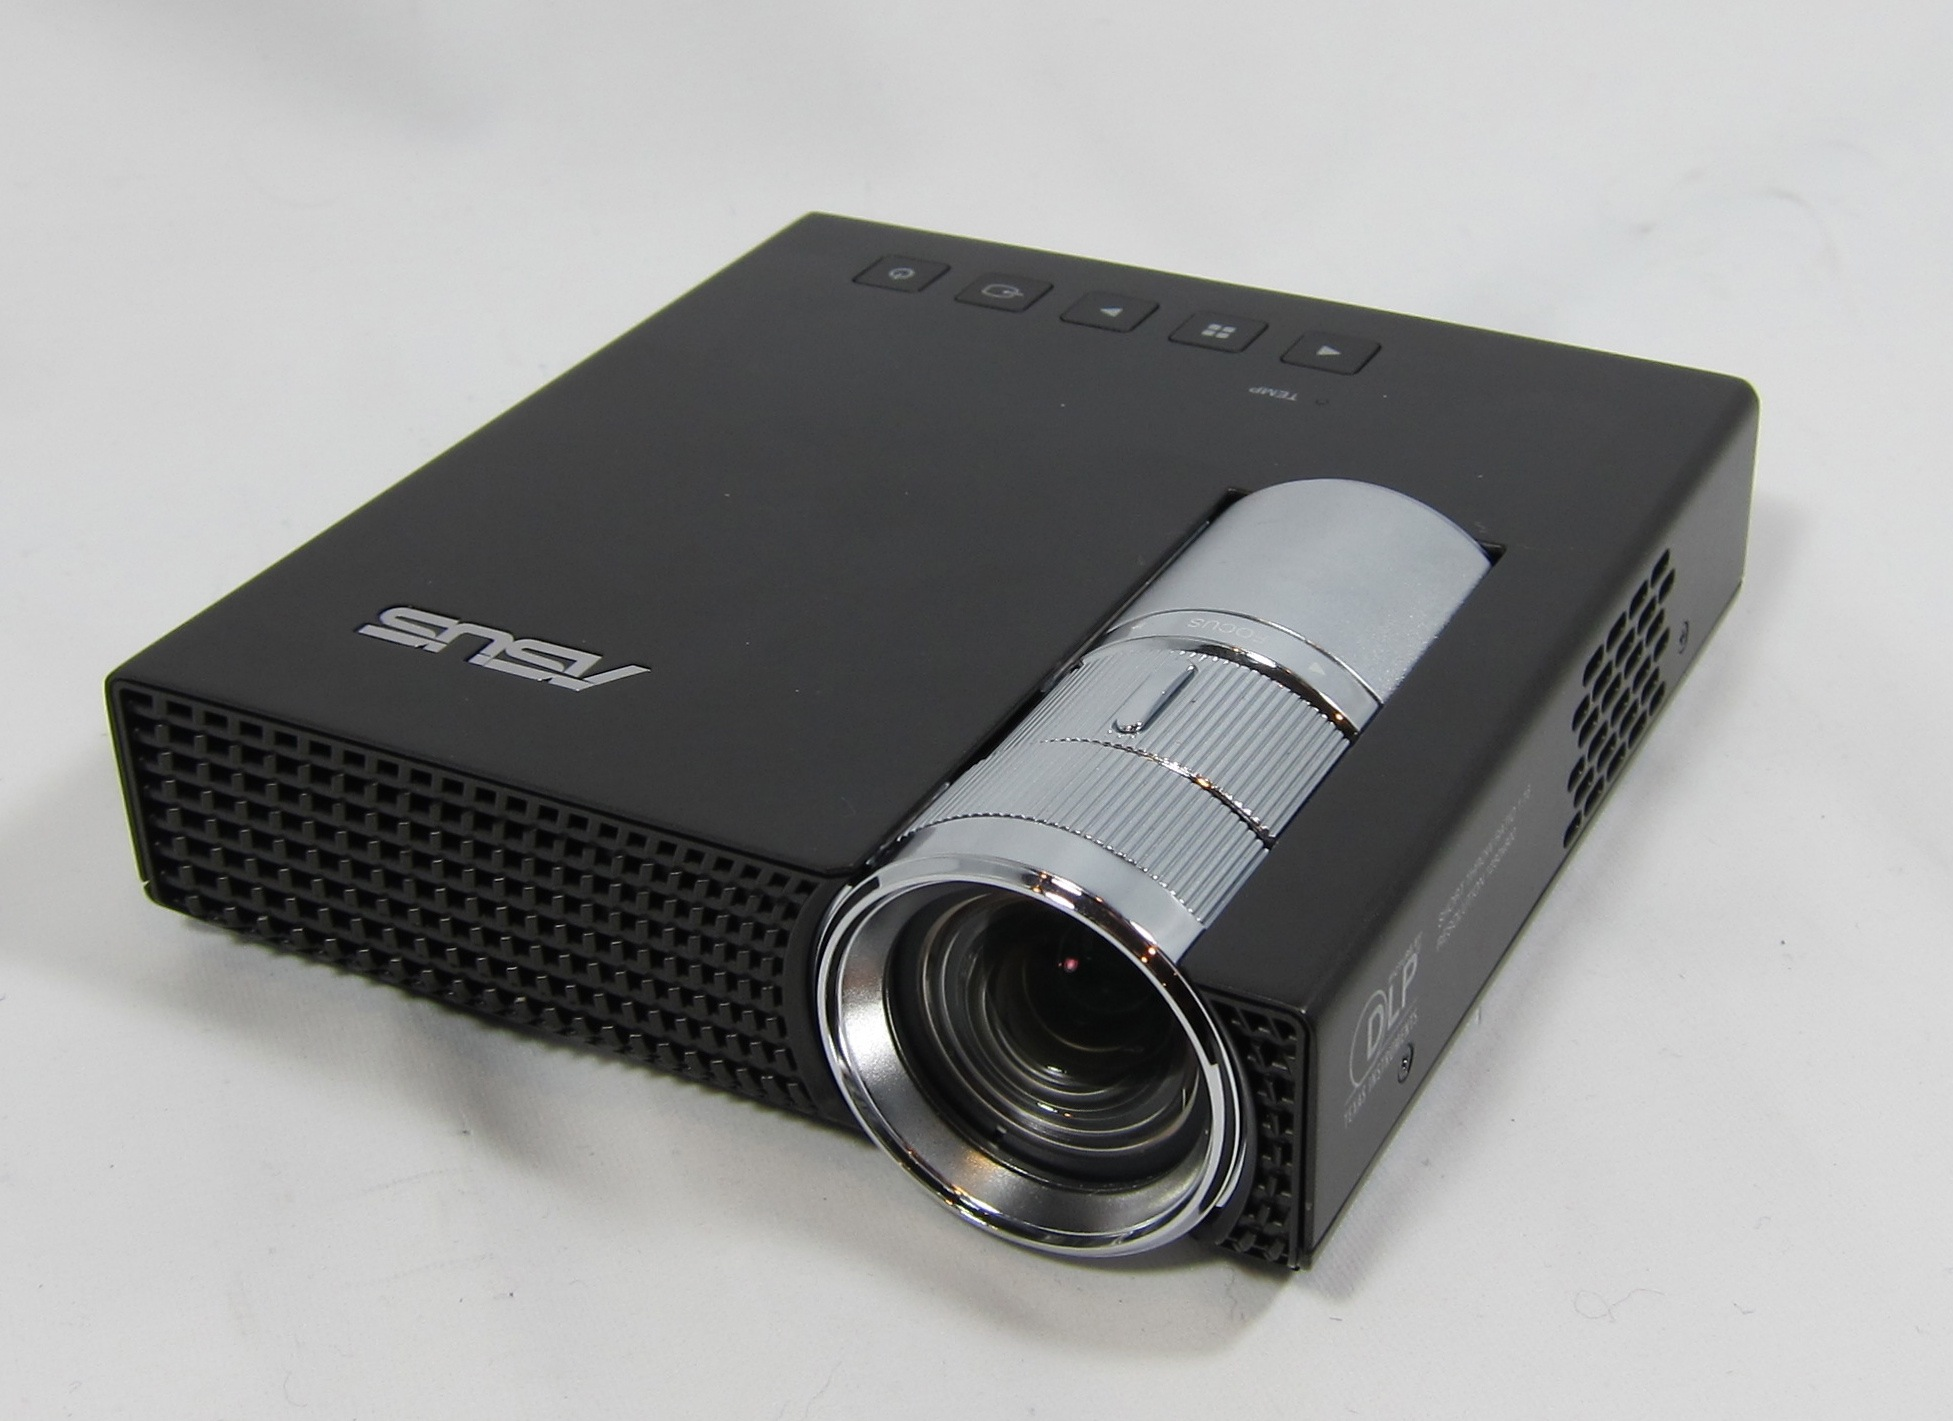 Samsung Beamer Mini Review Asus P1 Portable Led Projector